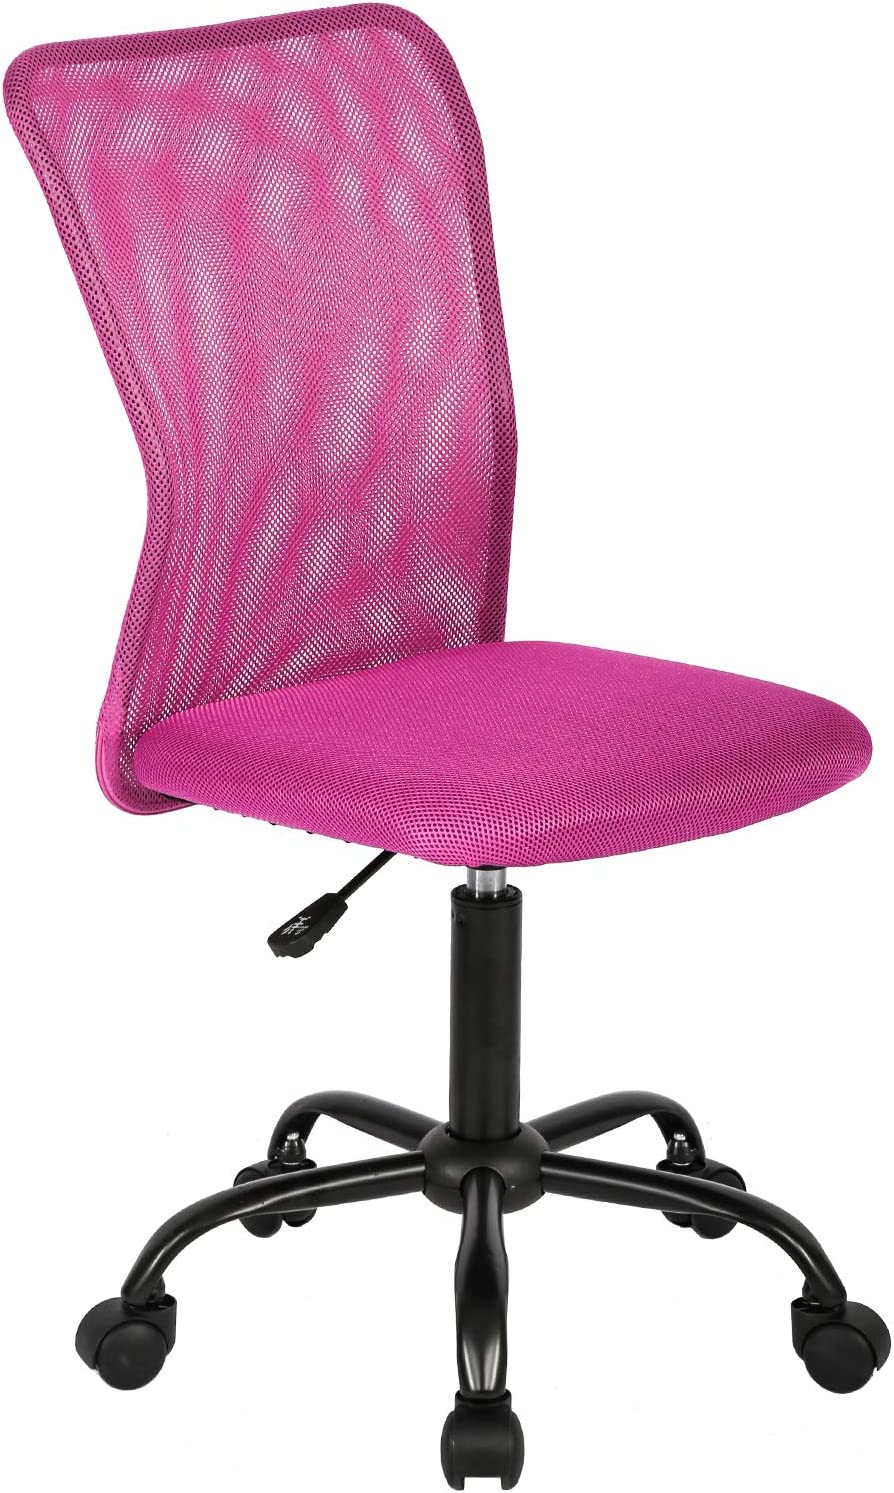 Ergonomic Office Chair Mesh Computer Chair Small Desk Chair Back Support Lumbar Support Modern Executive Adjustable Chair Mid Back Task Rolling Swivel Chair with Wheels Armless (Pink)